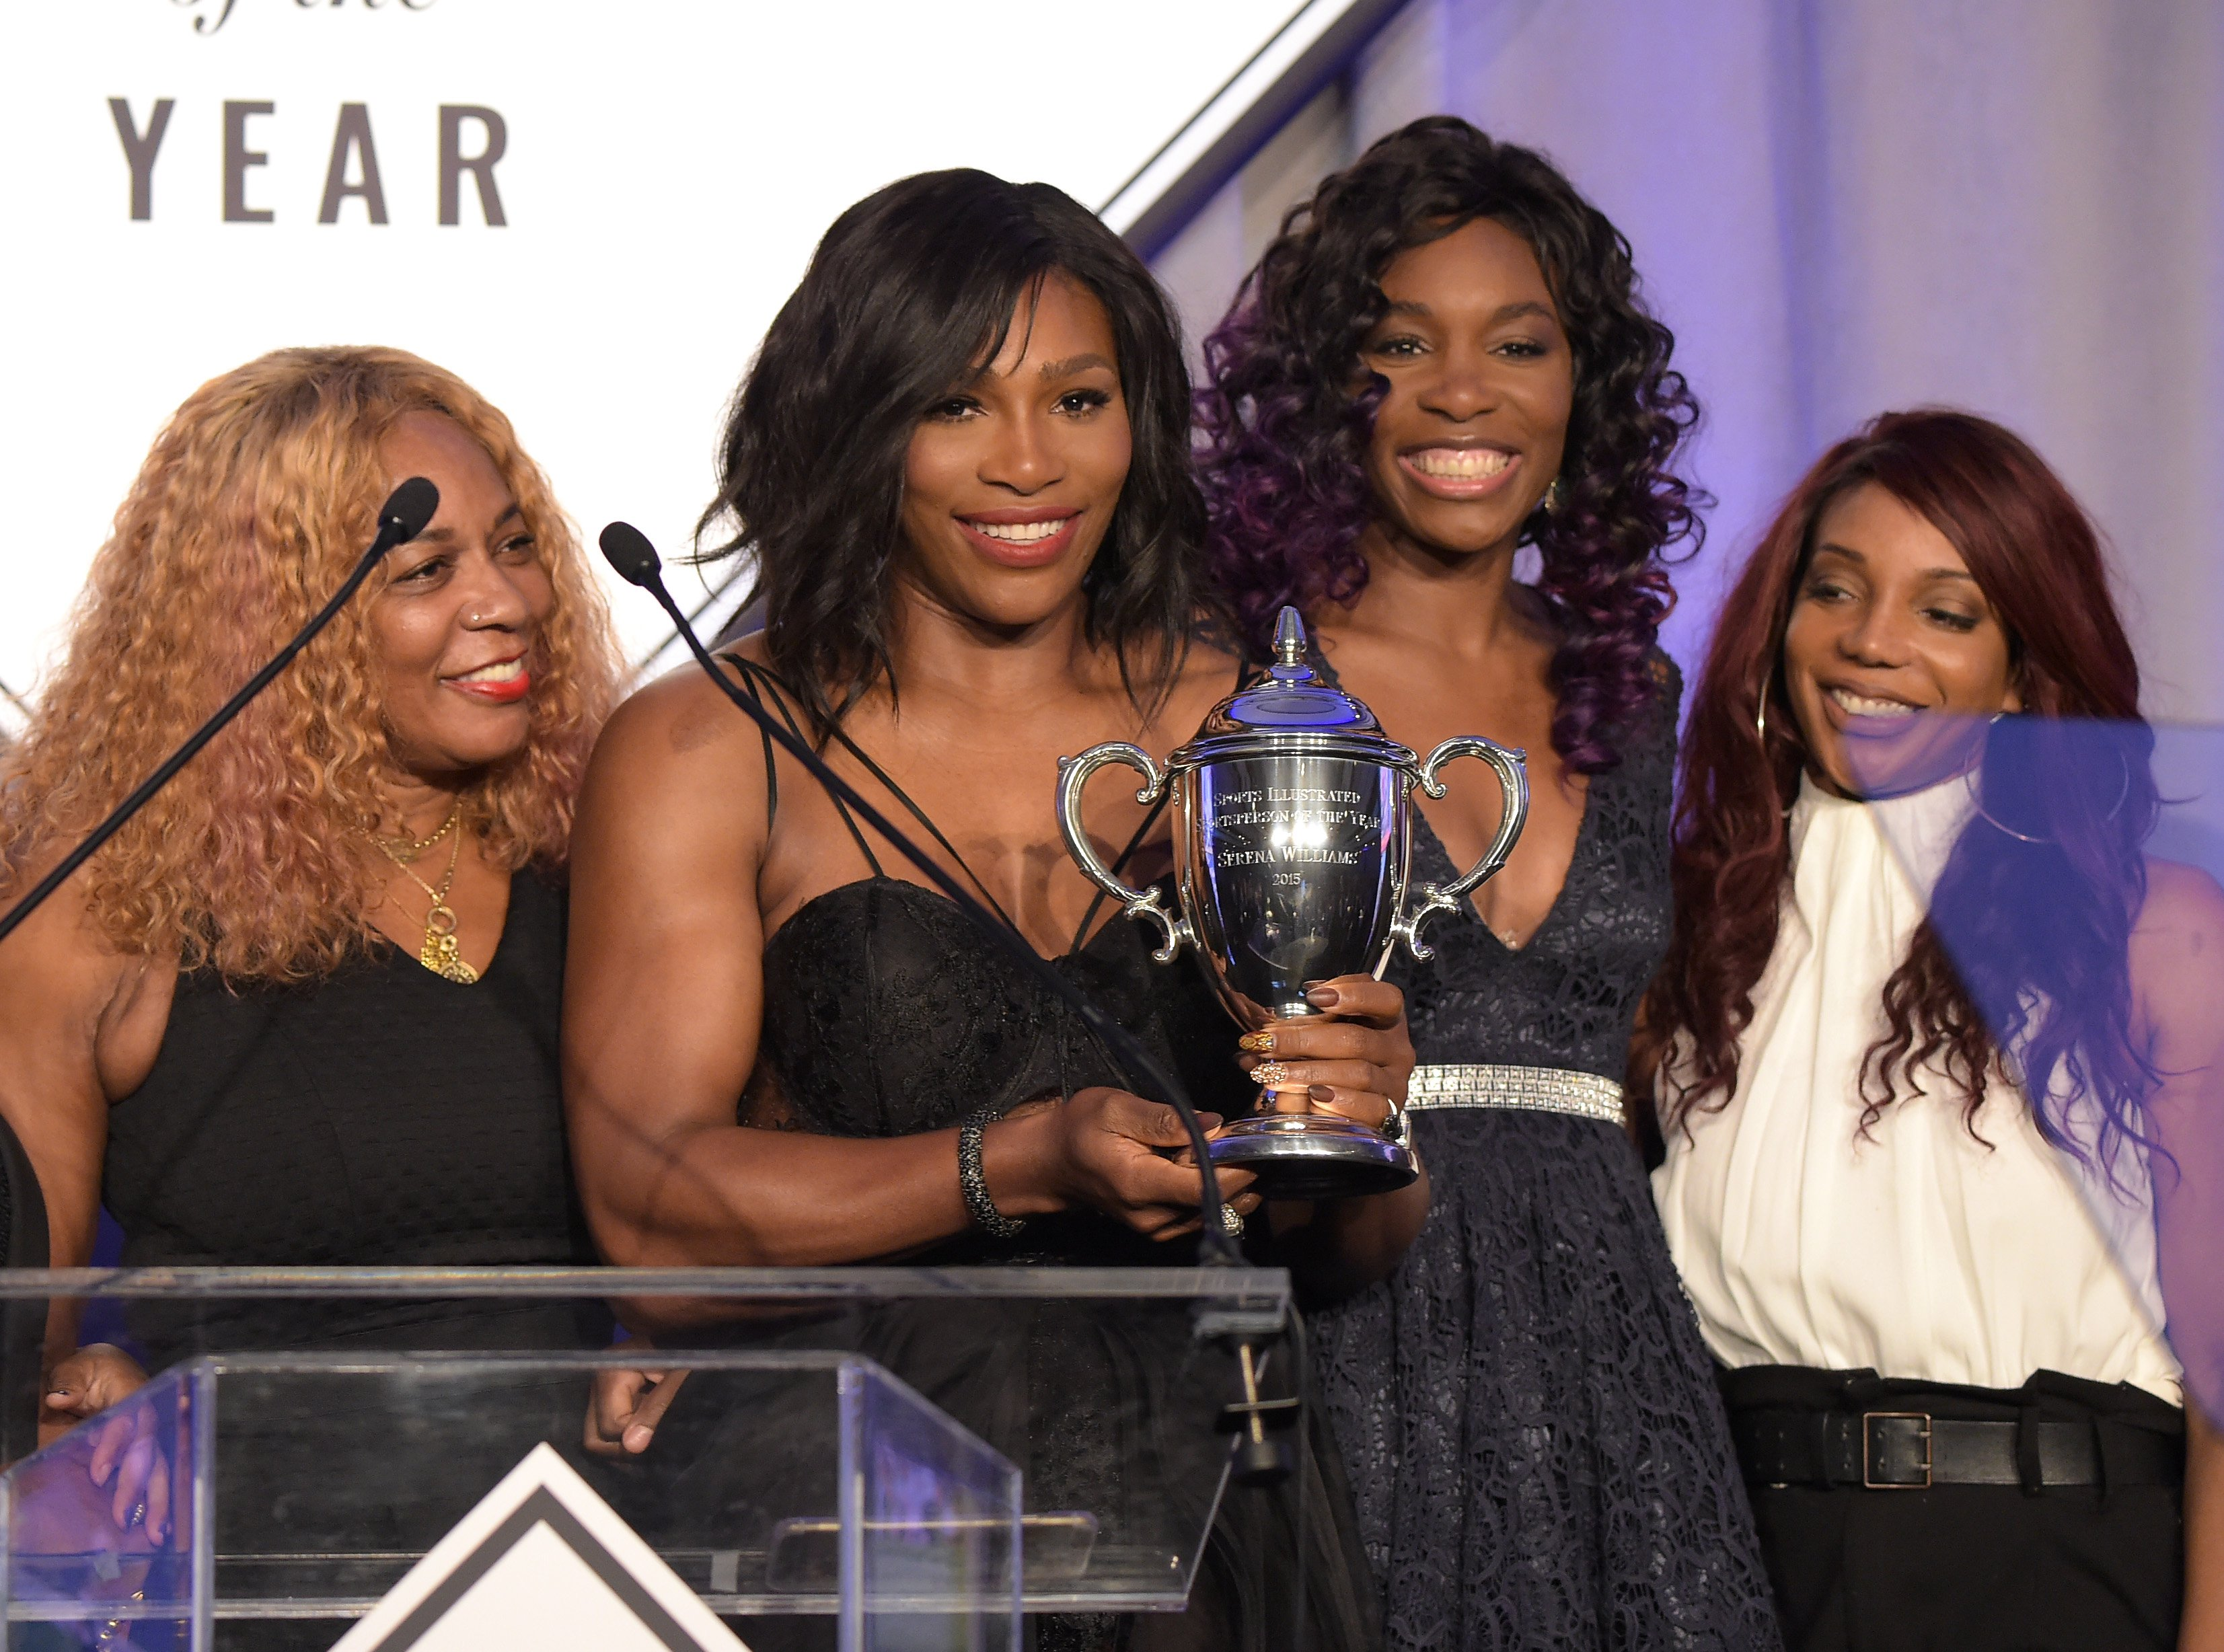 (L-R) Oracene Price, Serena Williams, Venus Williams and Lyndrea Price at the Sports Illustrated Sportsperson of the Year Ceremony on Dec. 15, 2015 in New York City | Photo: Getty Images